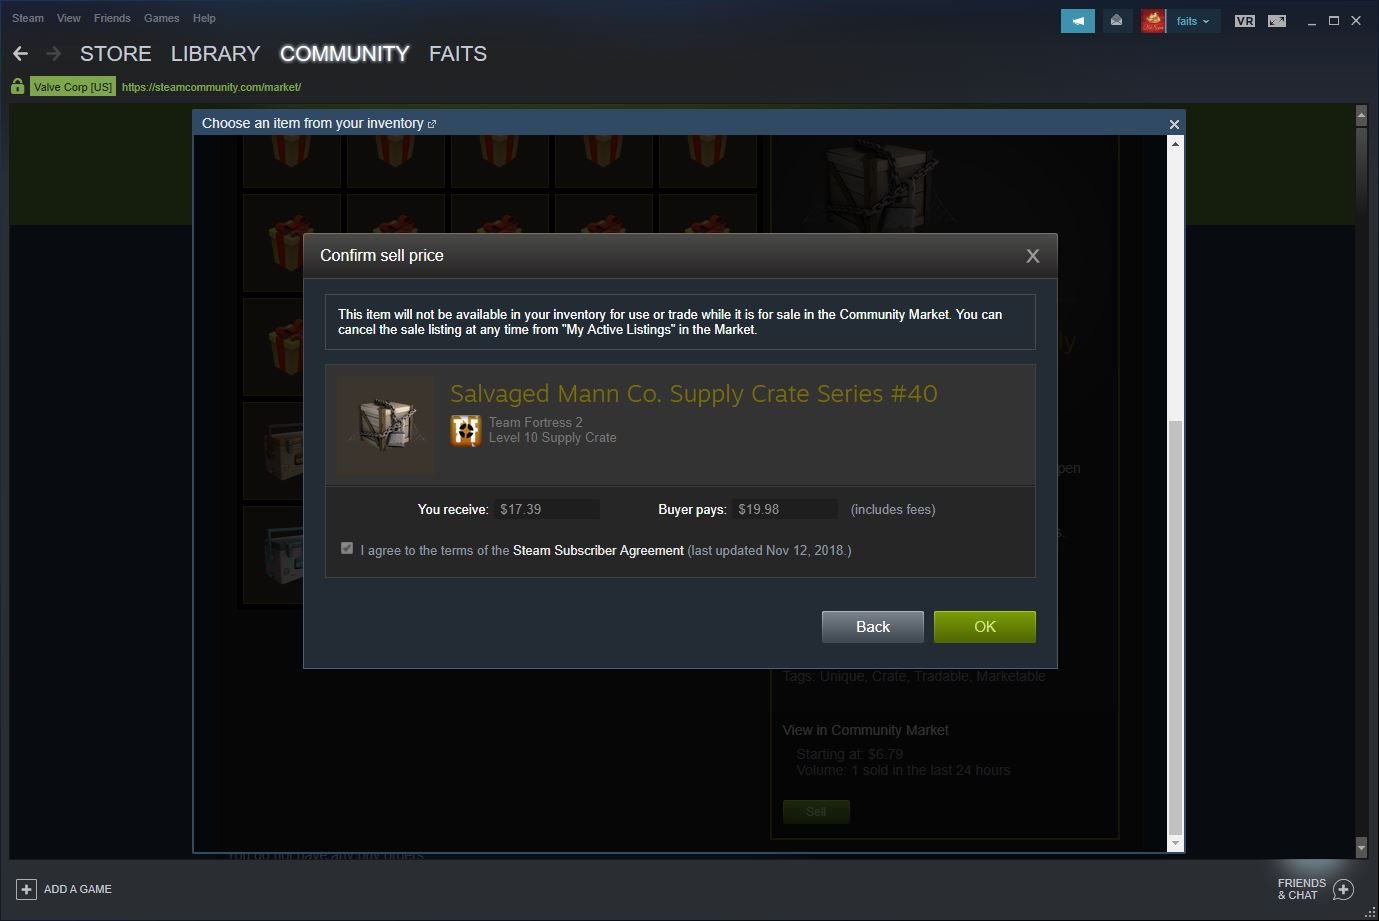 Steam Community Market price confirmation page.